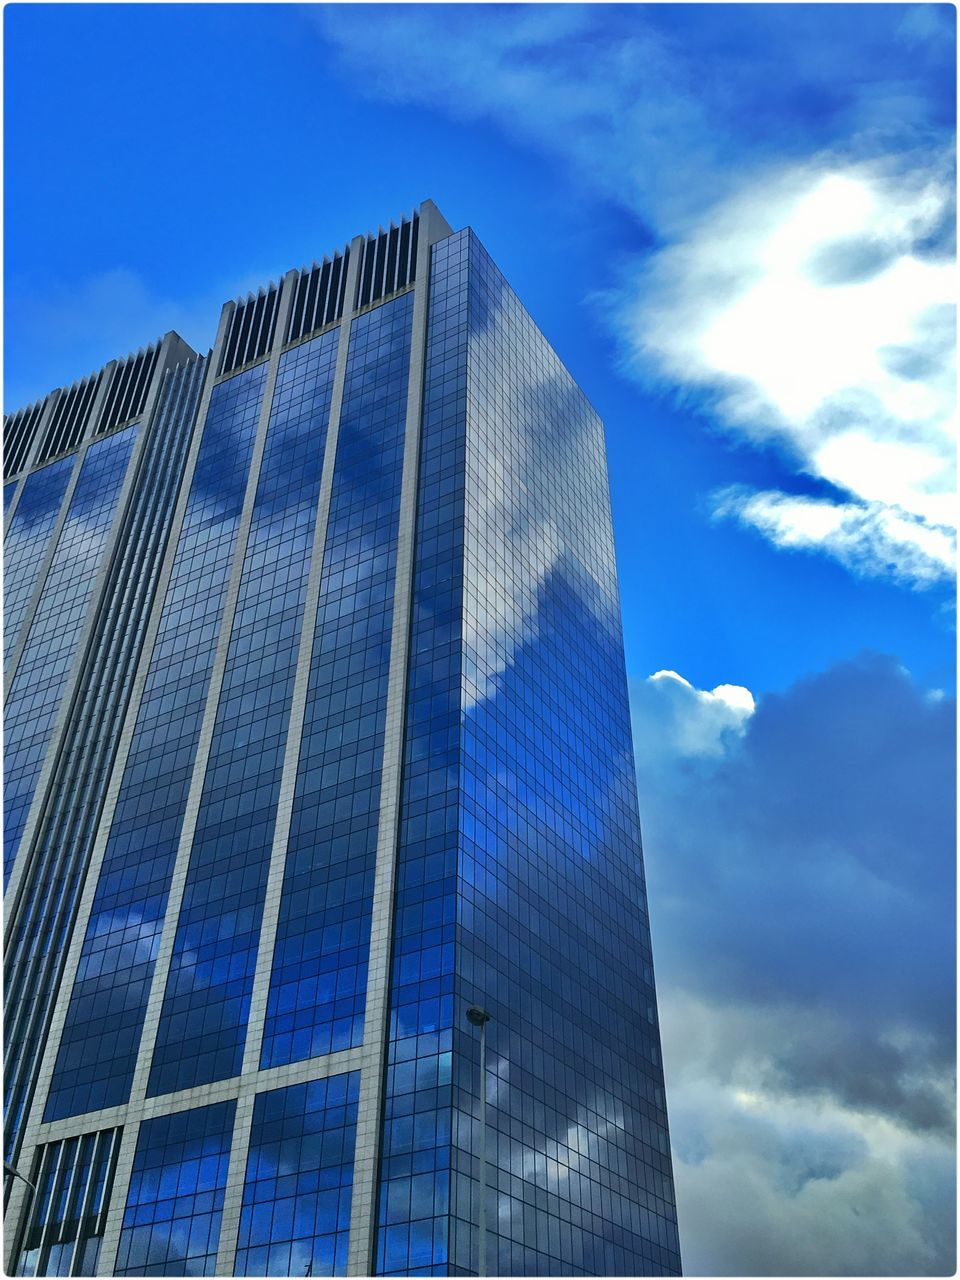 Low Angle View Of Modern Glass Office Skyscraper Against Sky